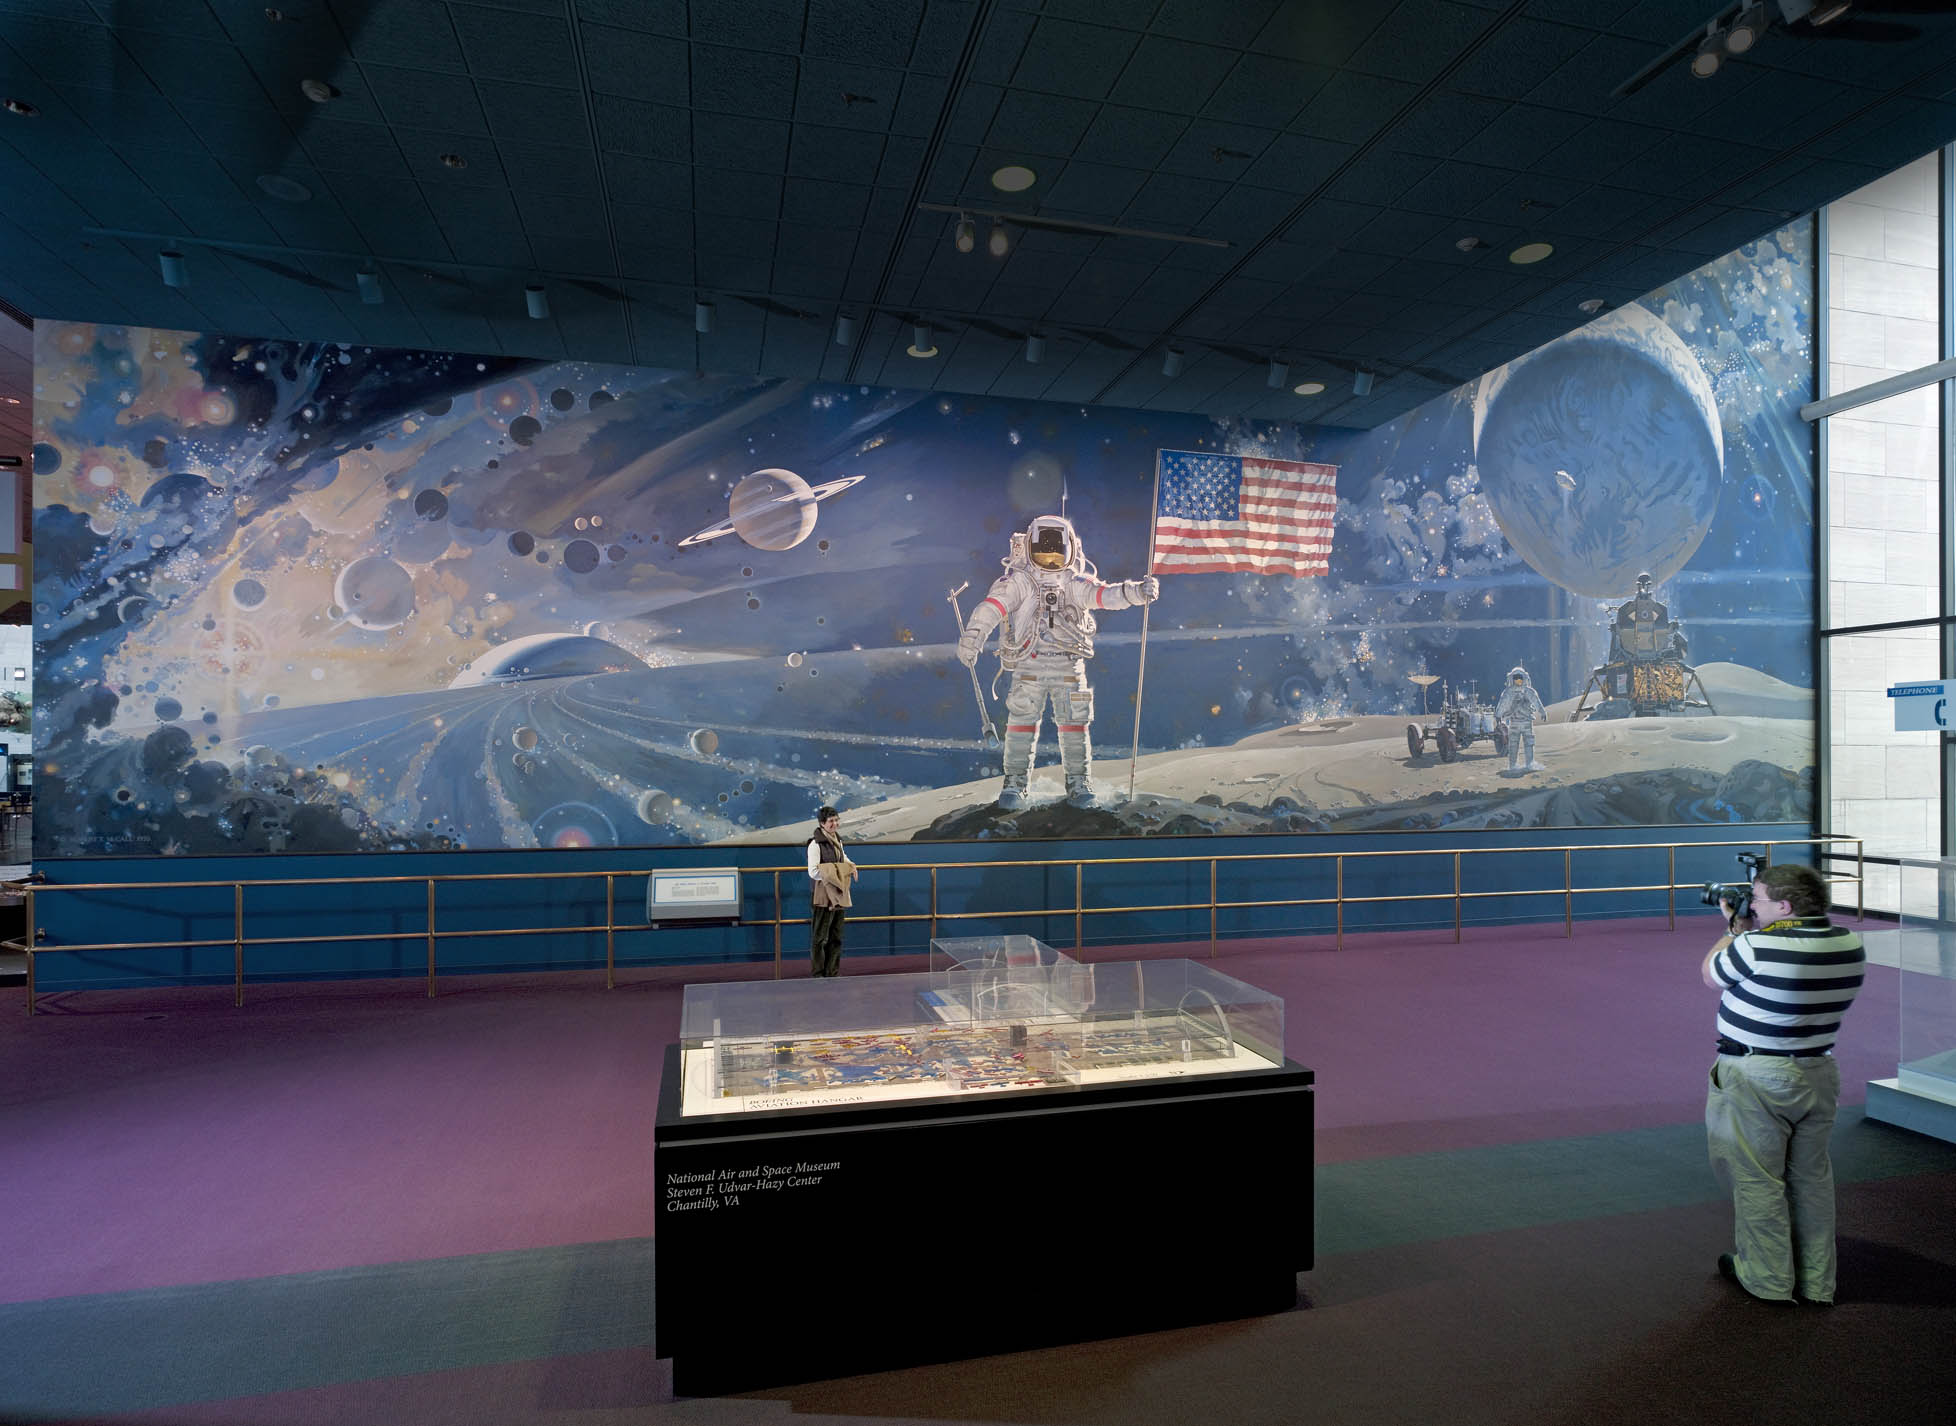 The space mural a cosmic view national air and space